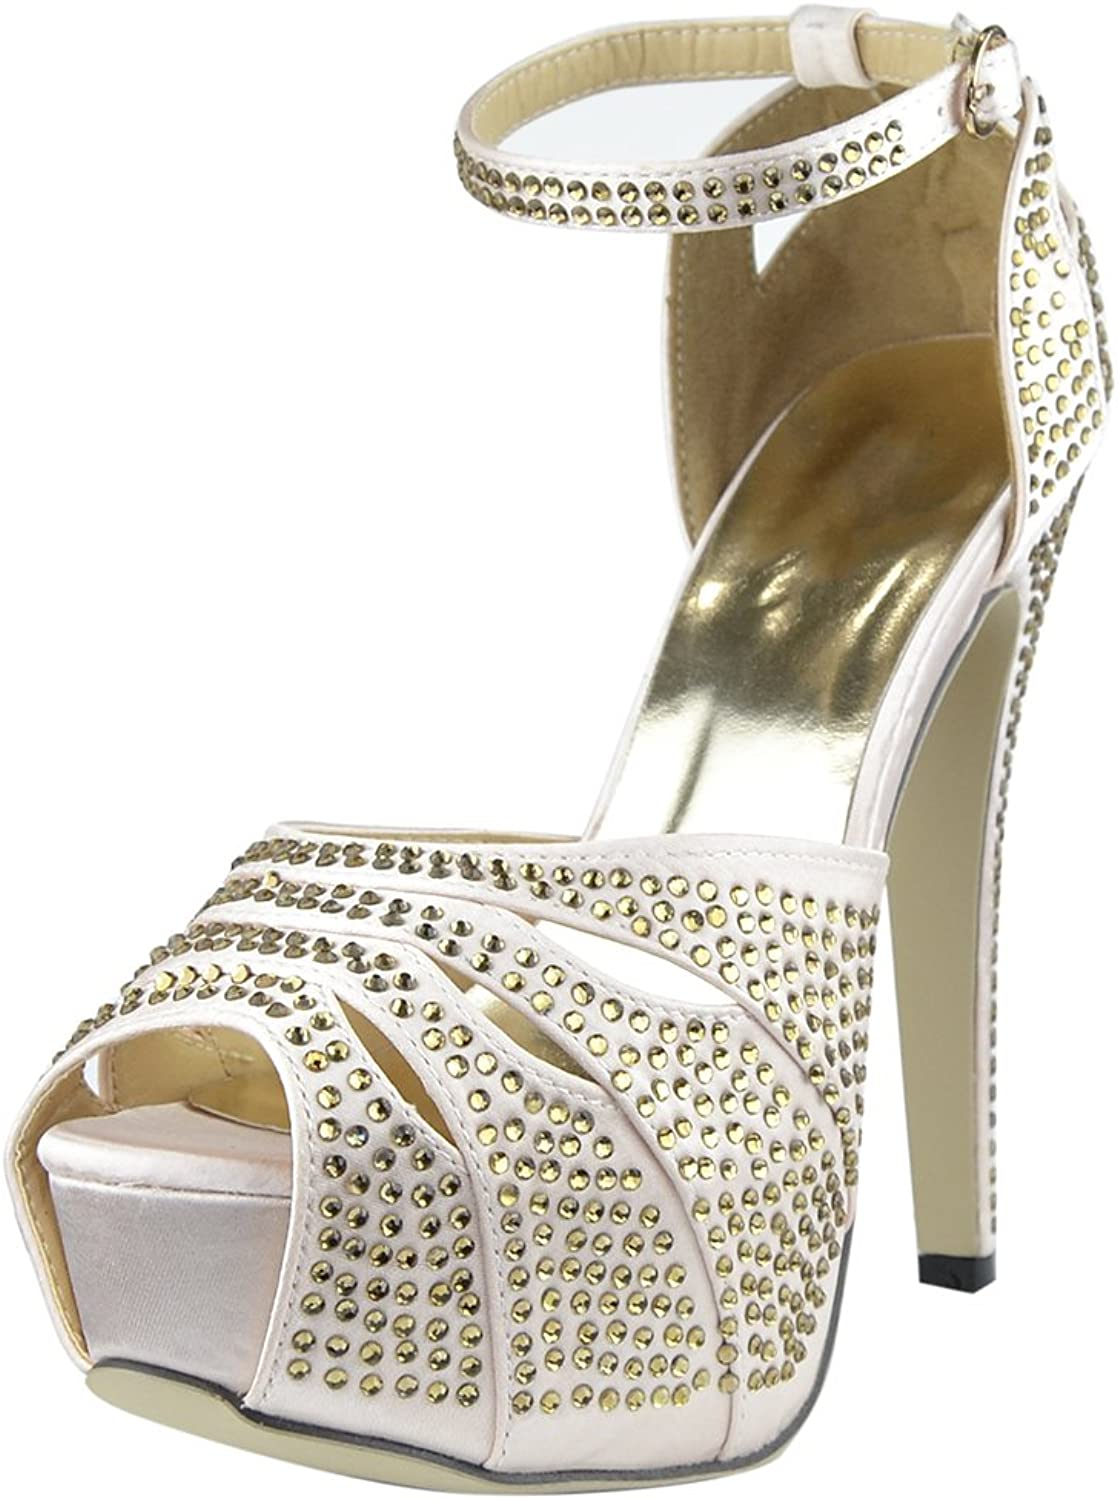 DS By KSC Womens Platform Sandals Studded Peep Toe Cutout High Heel Dress shoes Champagne